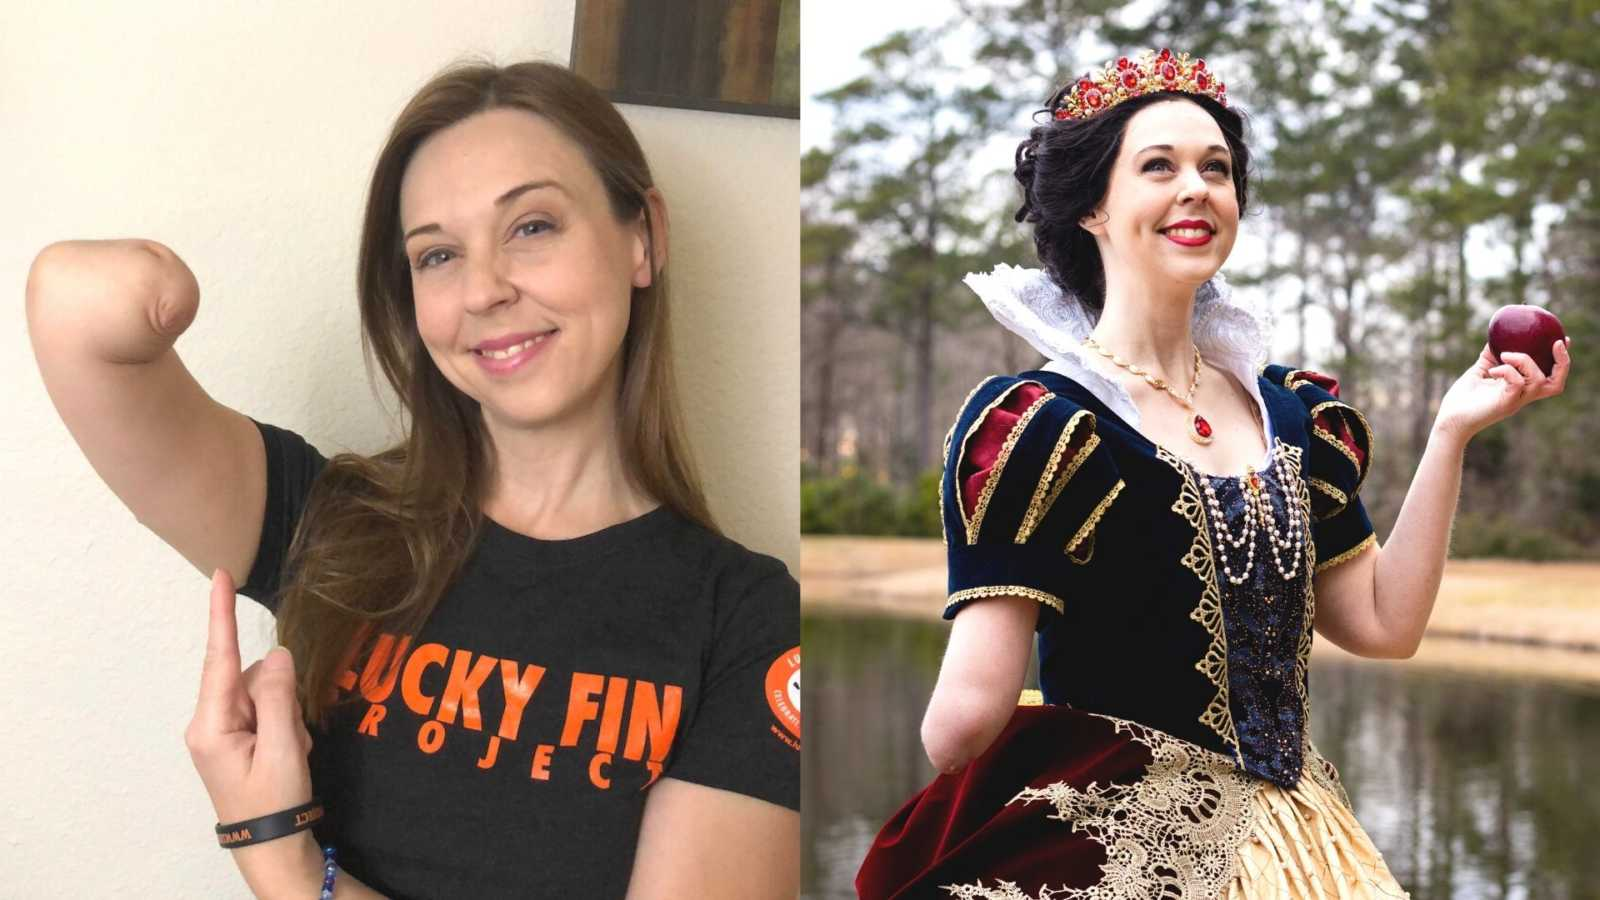 woman with limb difference holding up her arm, woman with limb difference dressed up as Snow White